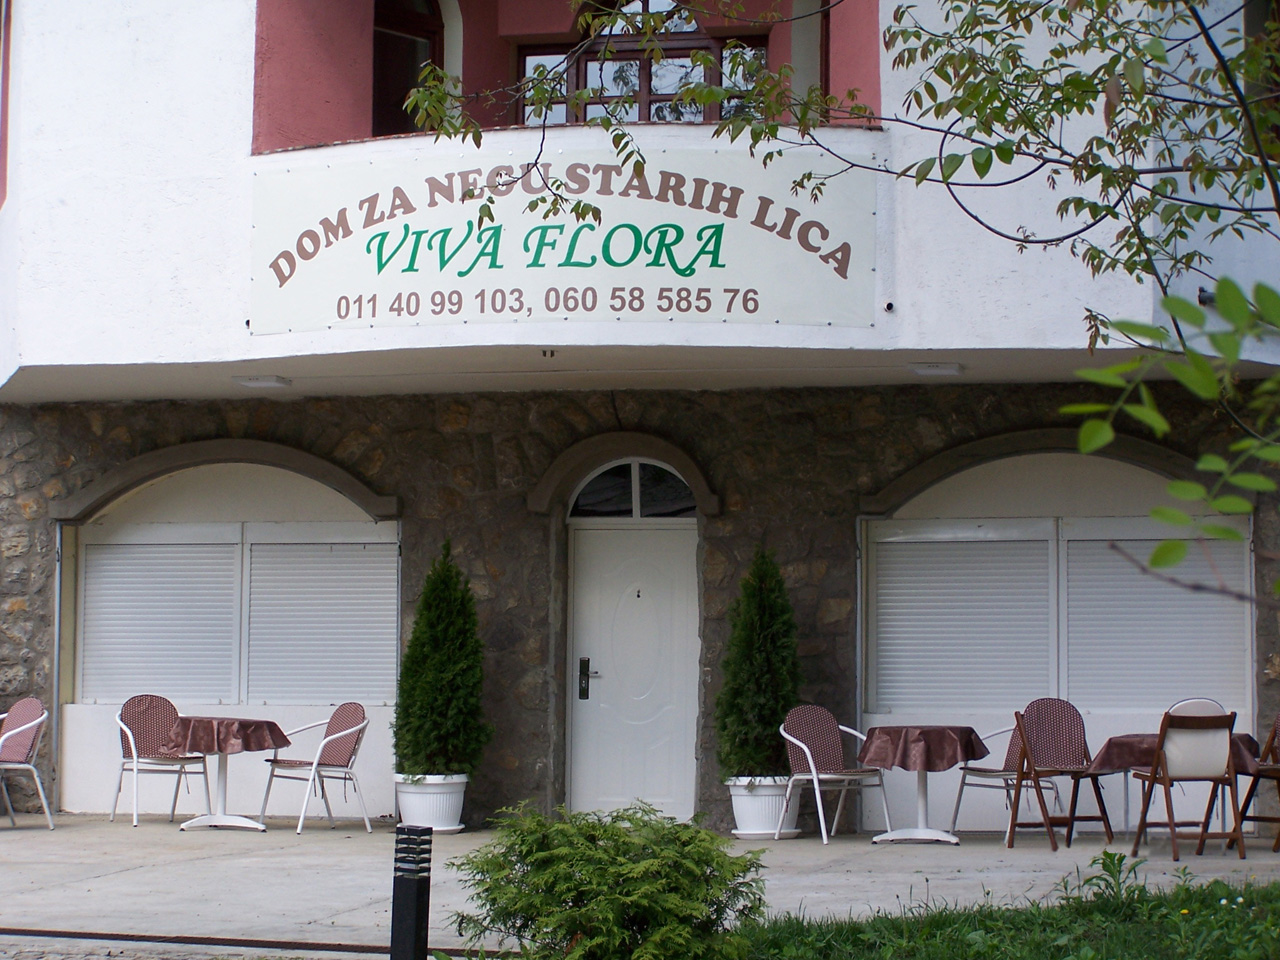 VIVA FLORA HOME FOR OLD Homes and care for the elderly Beograd